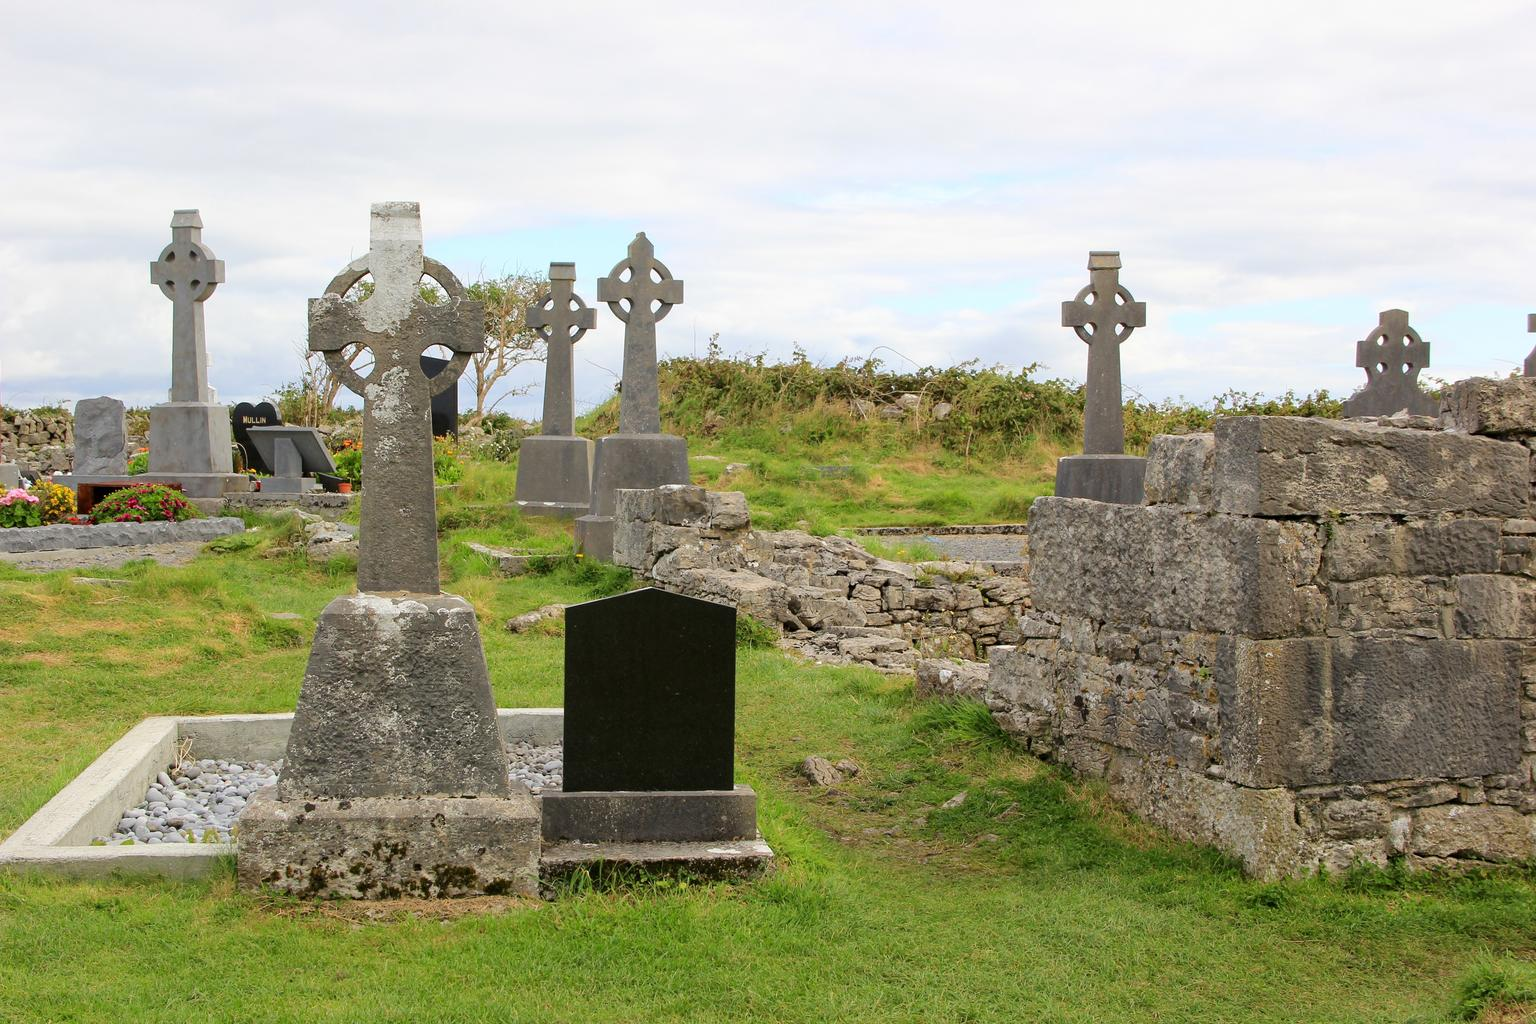 A cemetery with Celtic cross gravestones